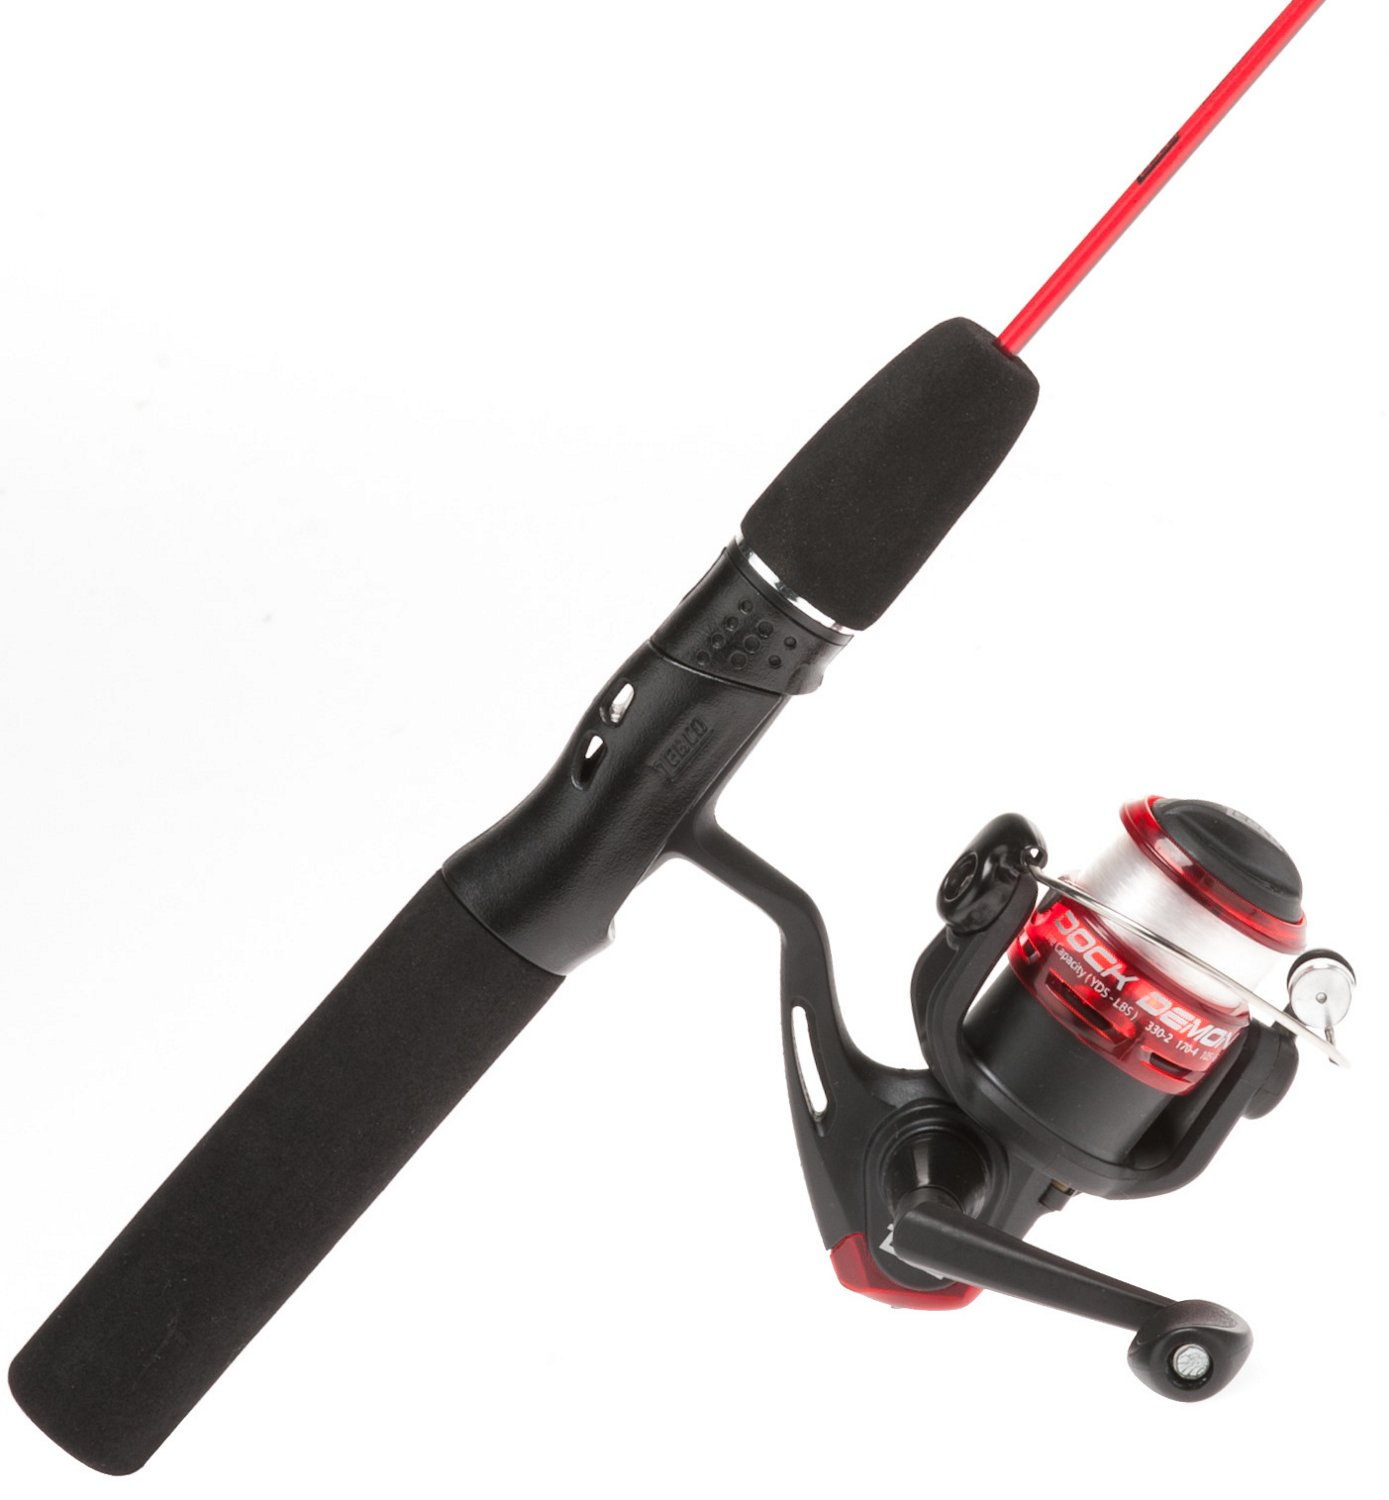 """fishing academydisplay product reviews for zebco dock demon 2\u00276\"""" freshwater spinning rod and reel"""